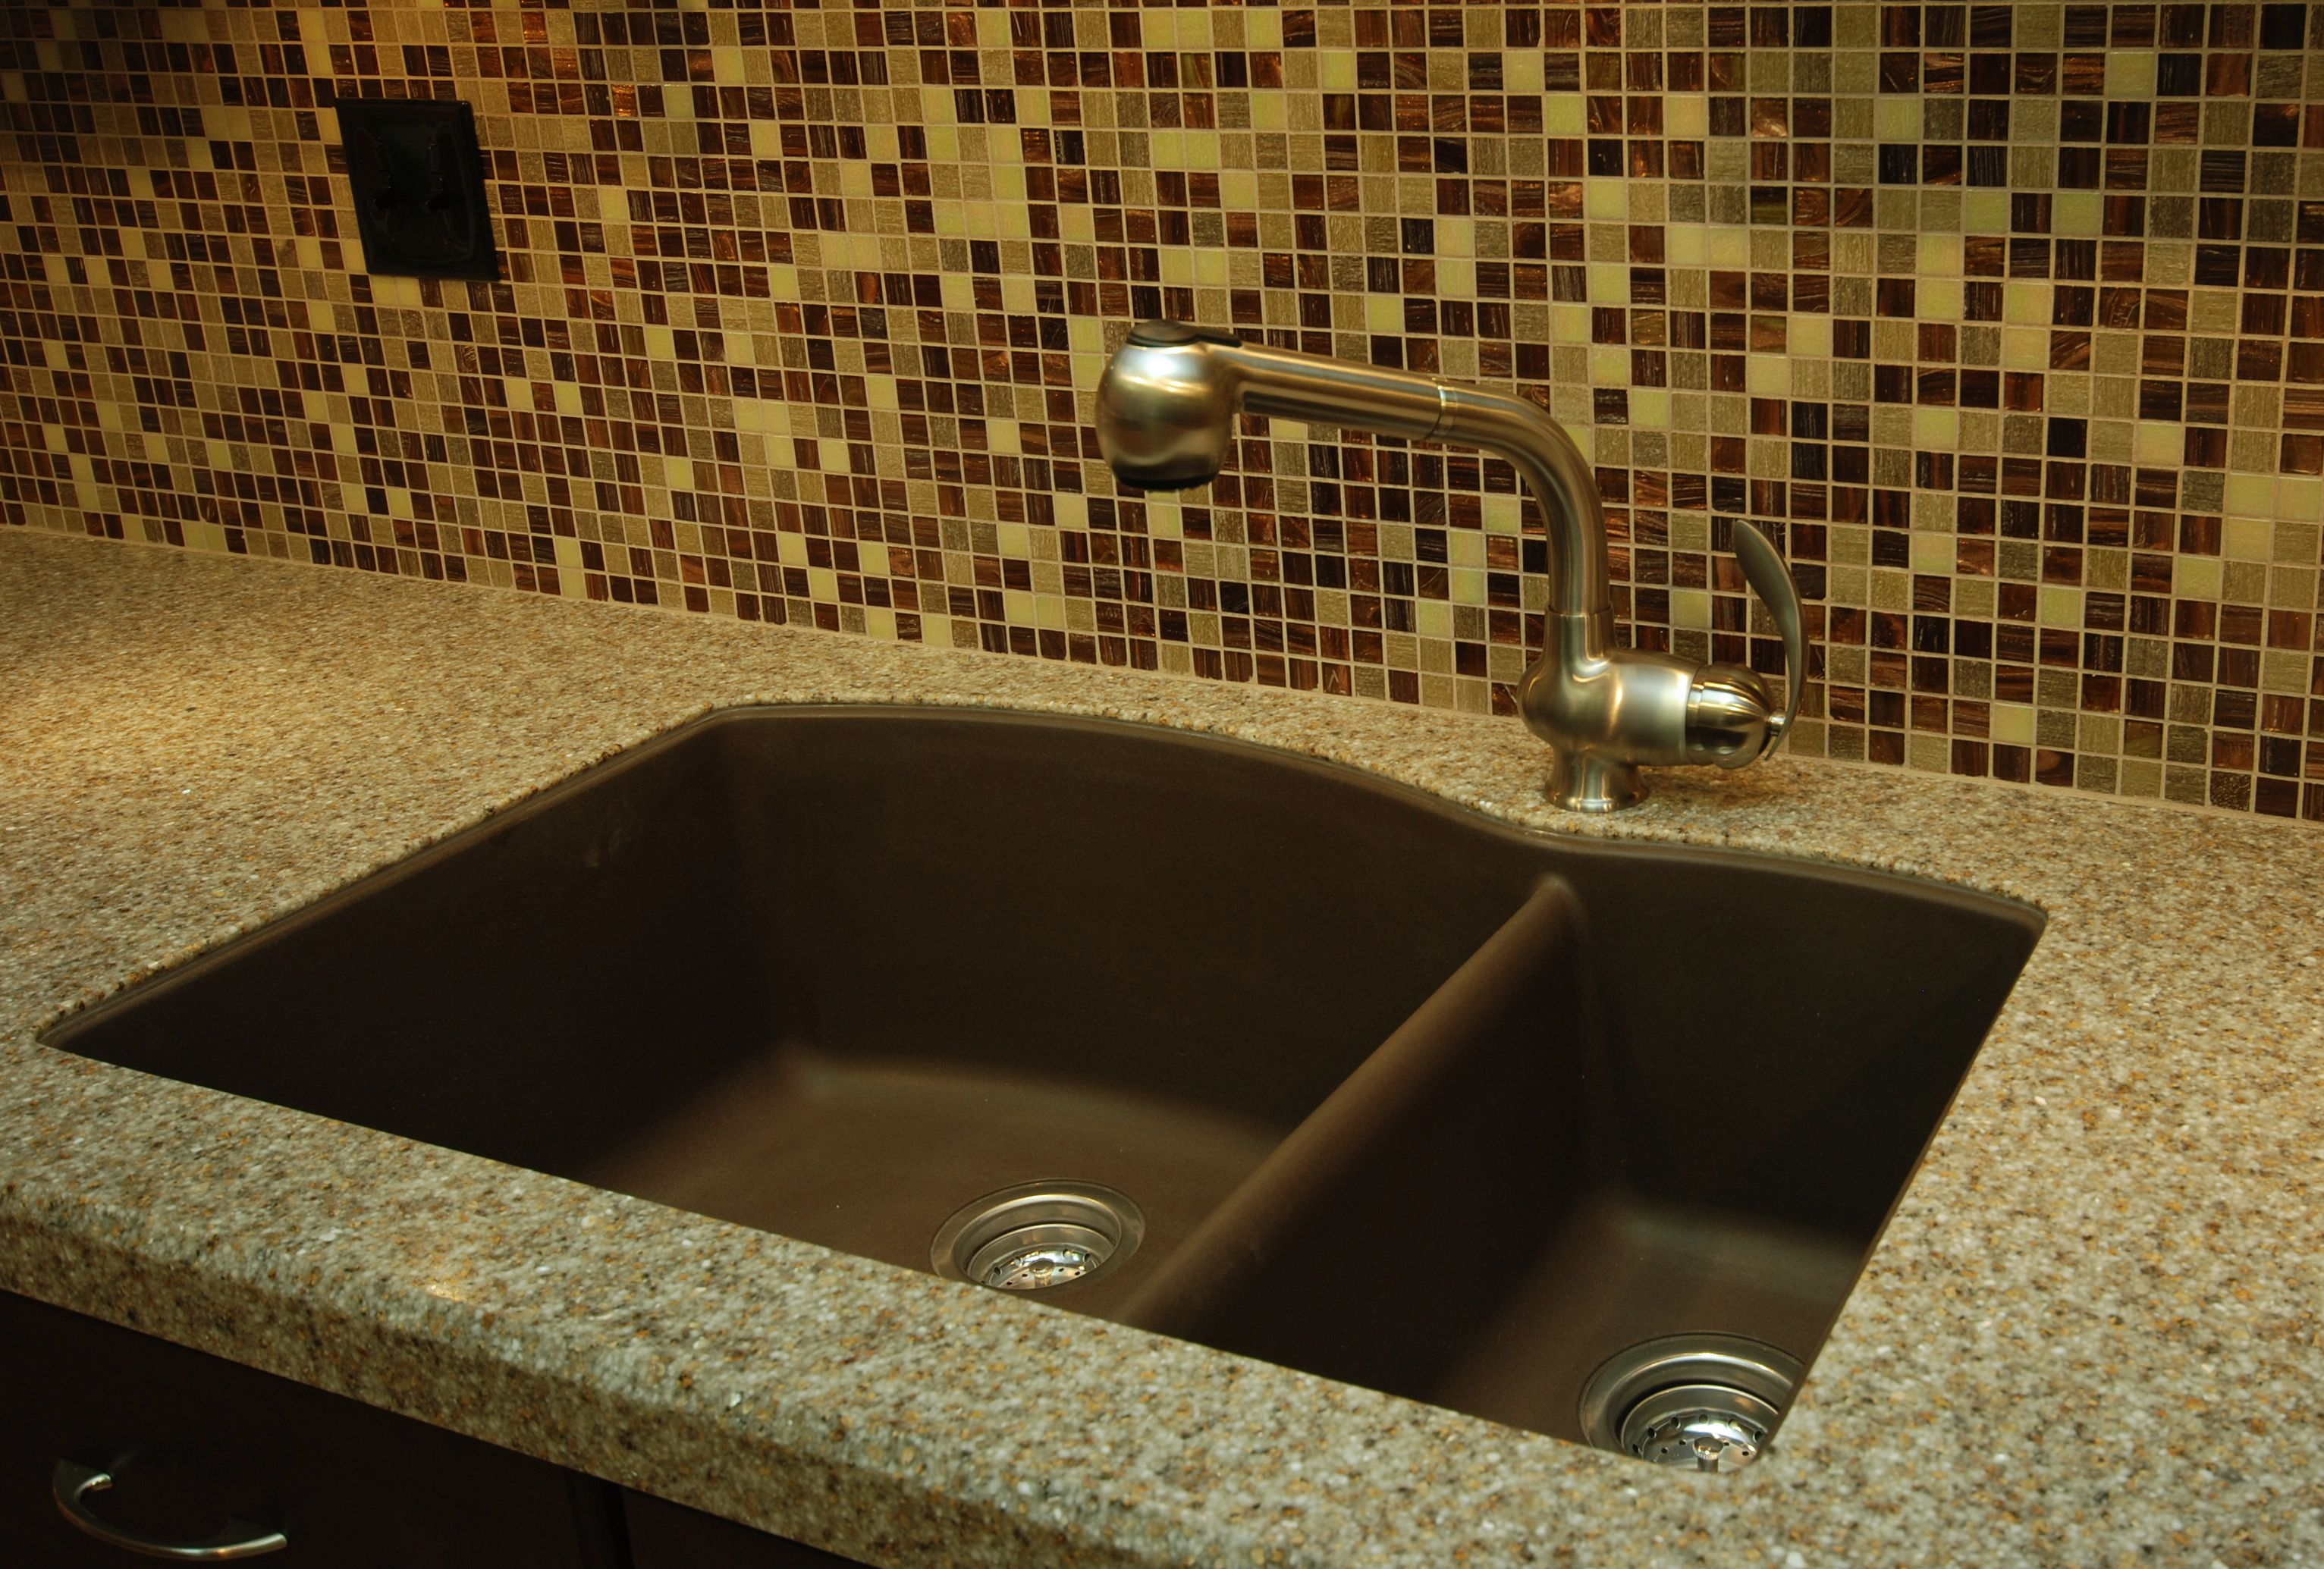 Granite Composite Undermount Kitchen Sinks Undermount granite composite sink sinks faucets showerheads undermount granite composite sink workwithnaturefo